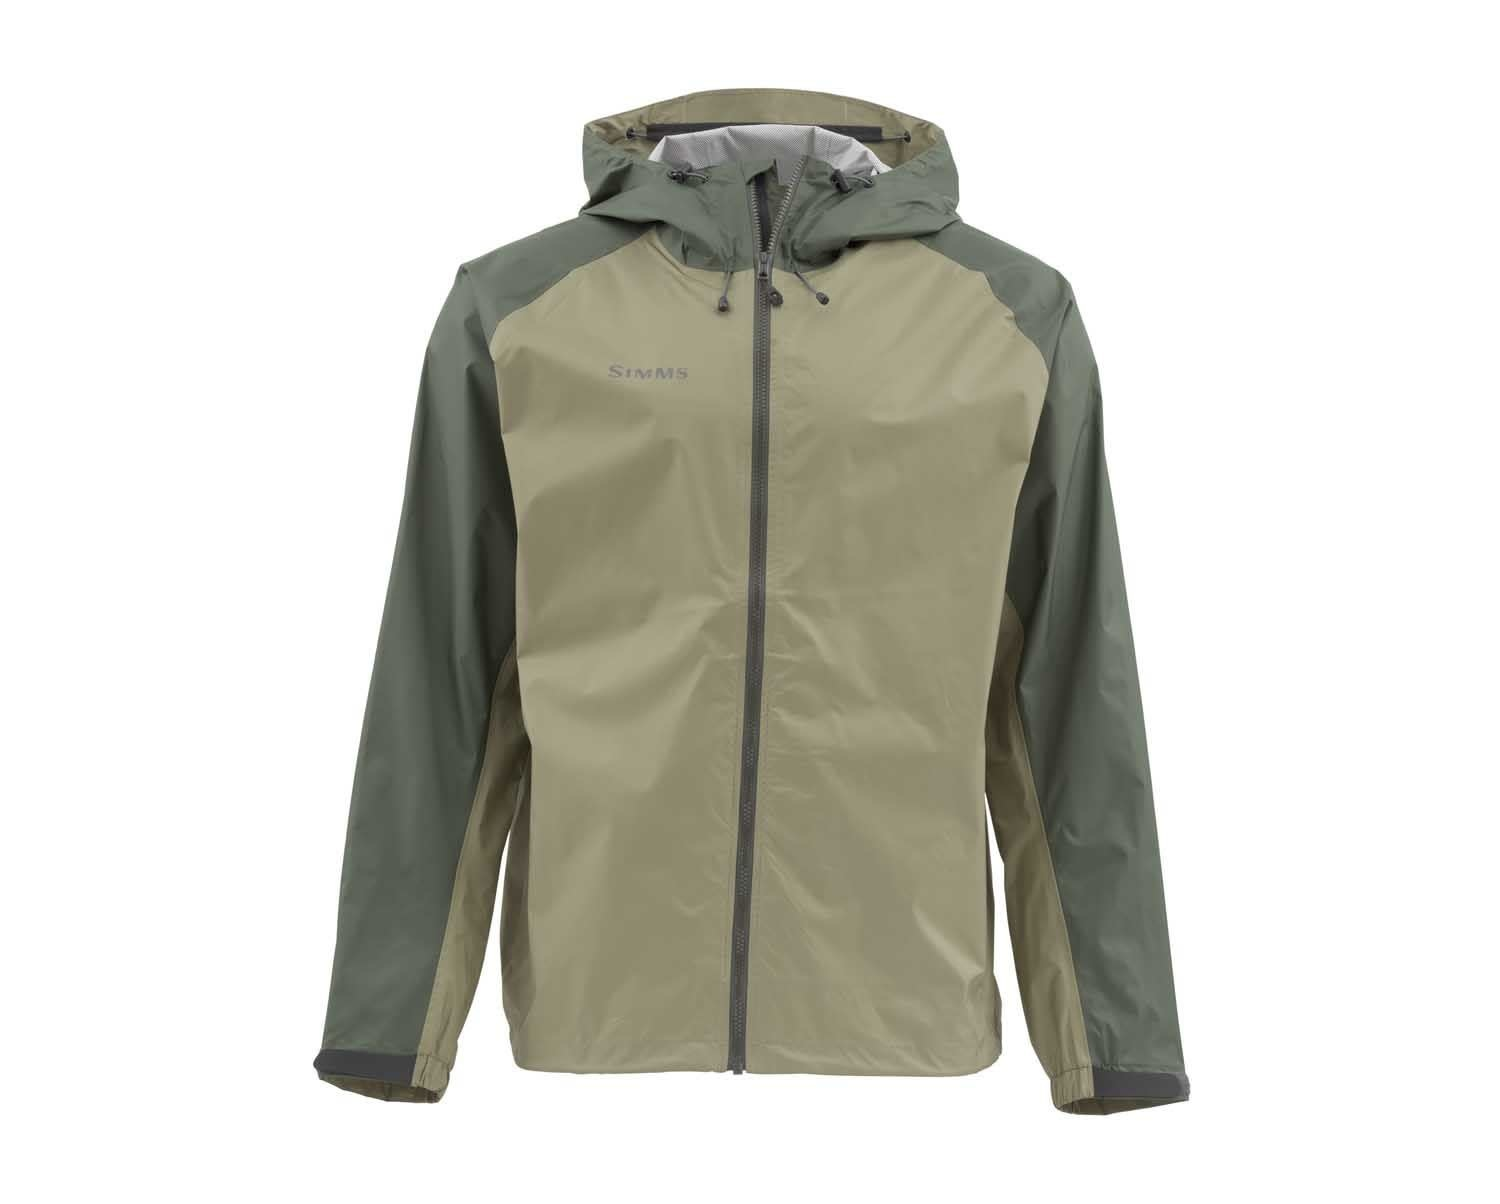 Simms Waypoints Jacket 50% Off